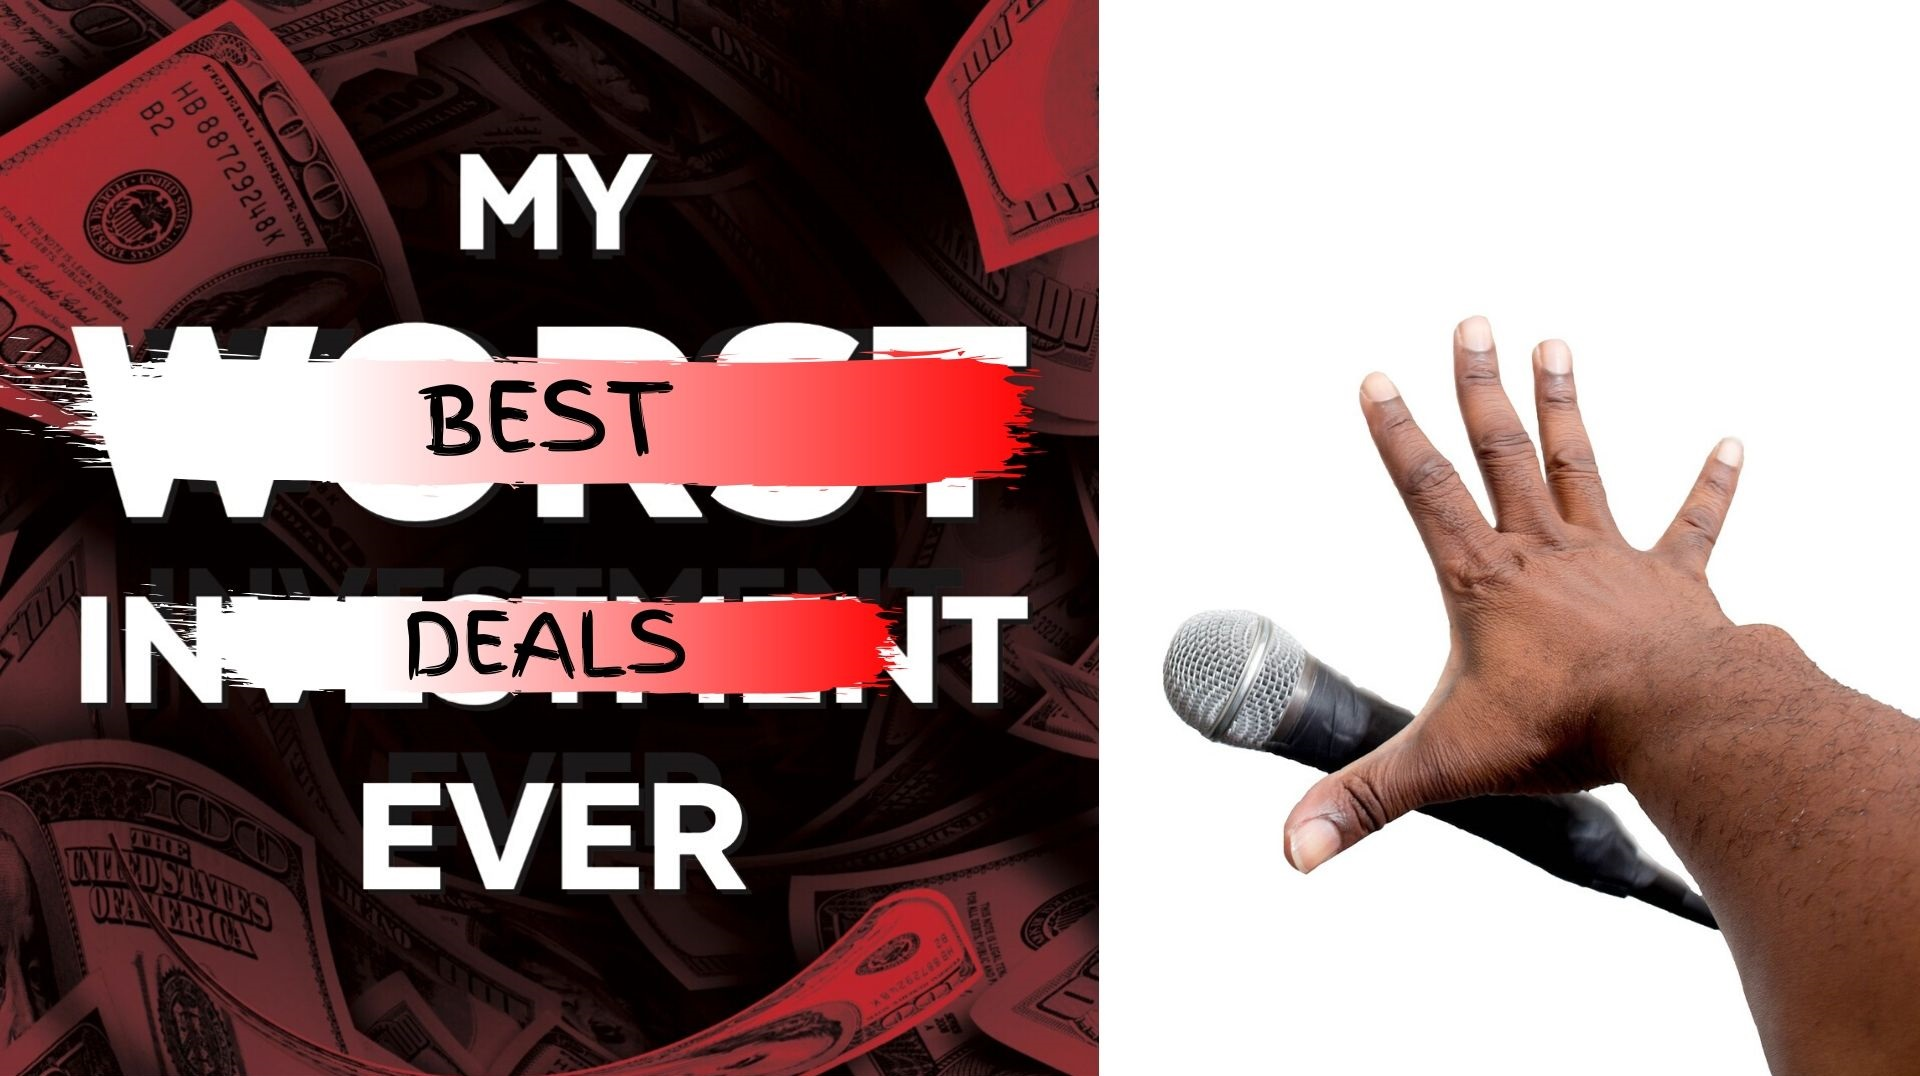 My best deals ever mic drop 1